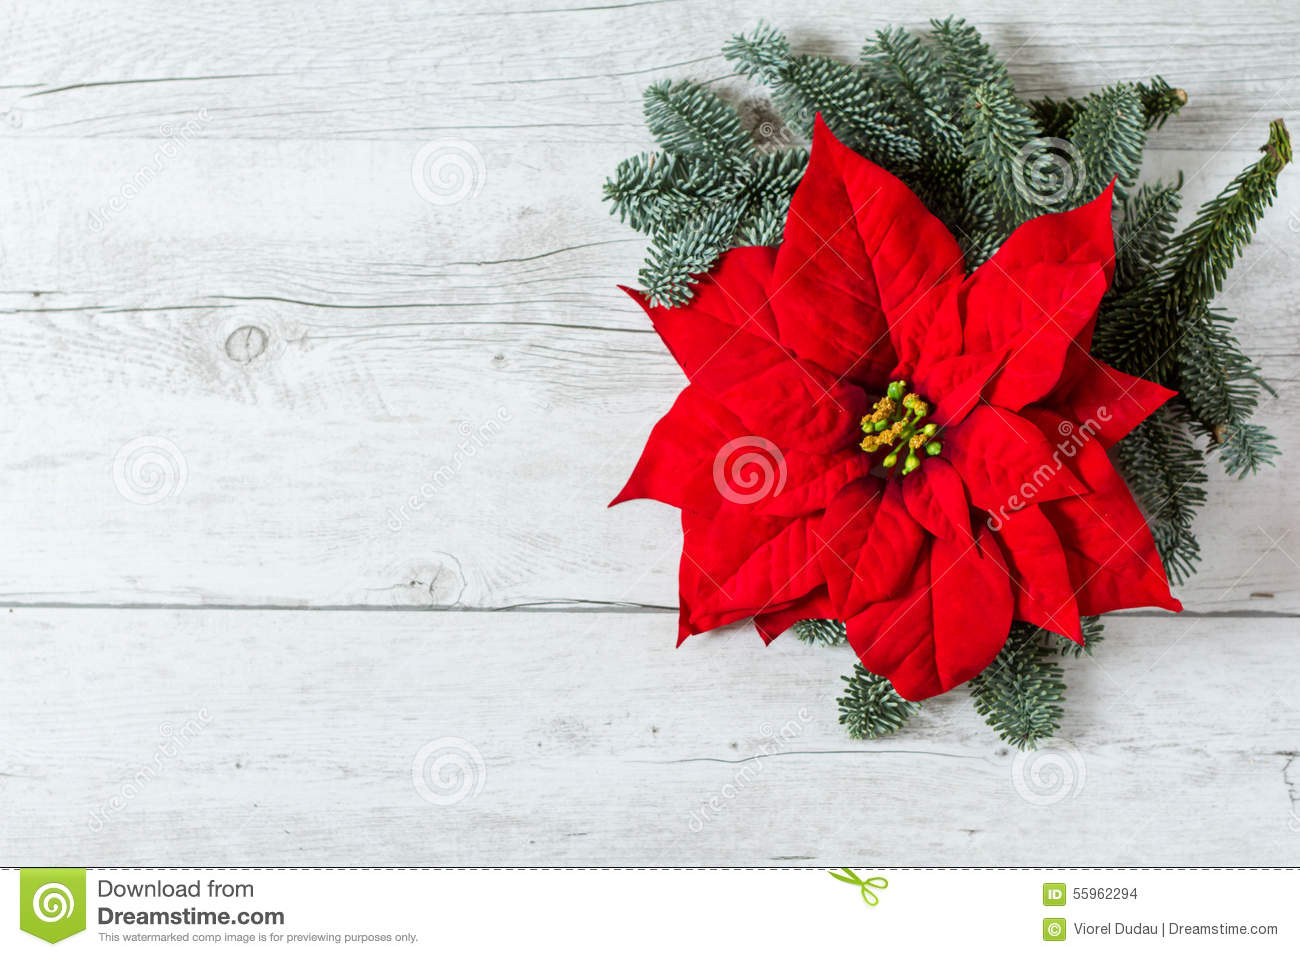 Christmas background with Poinsettia star flower